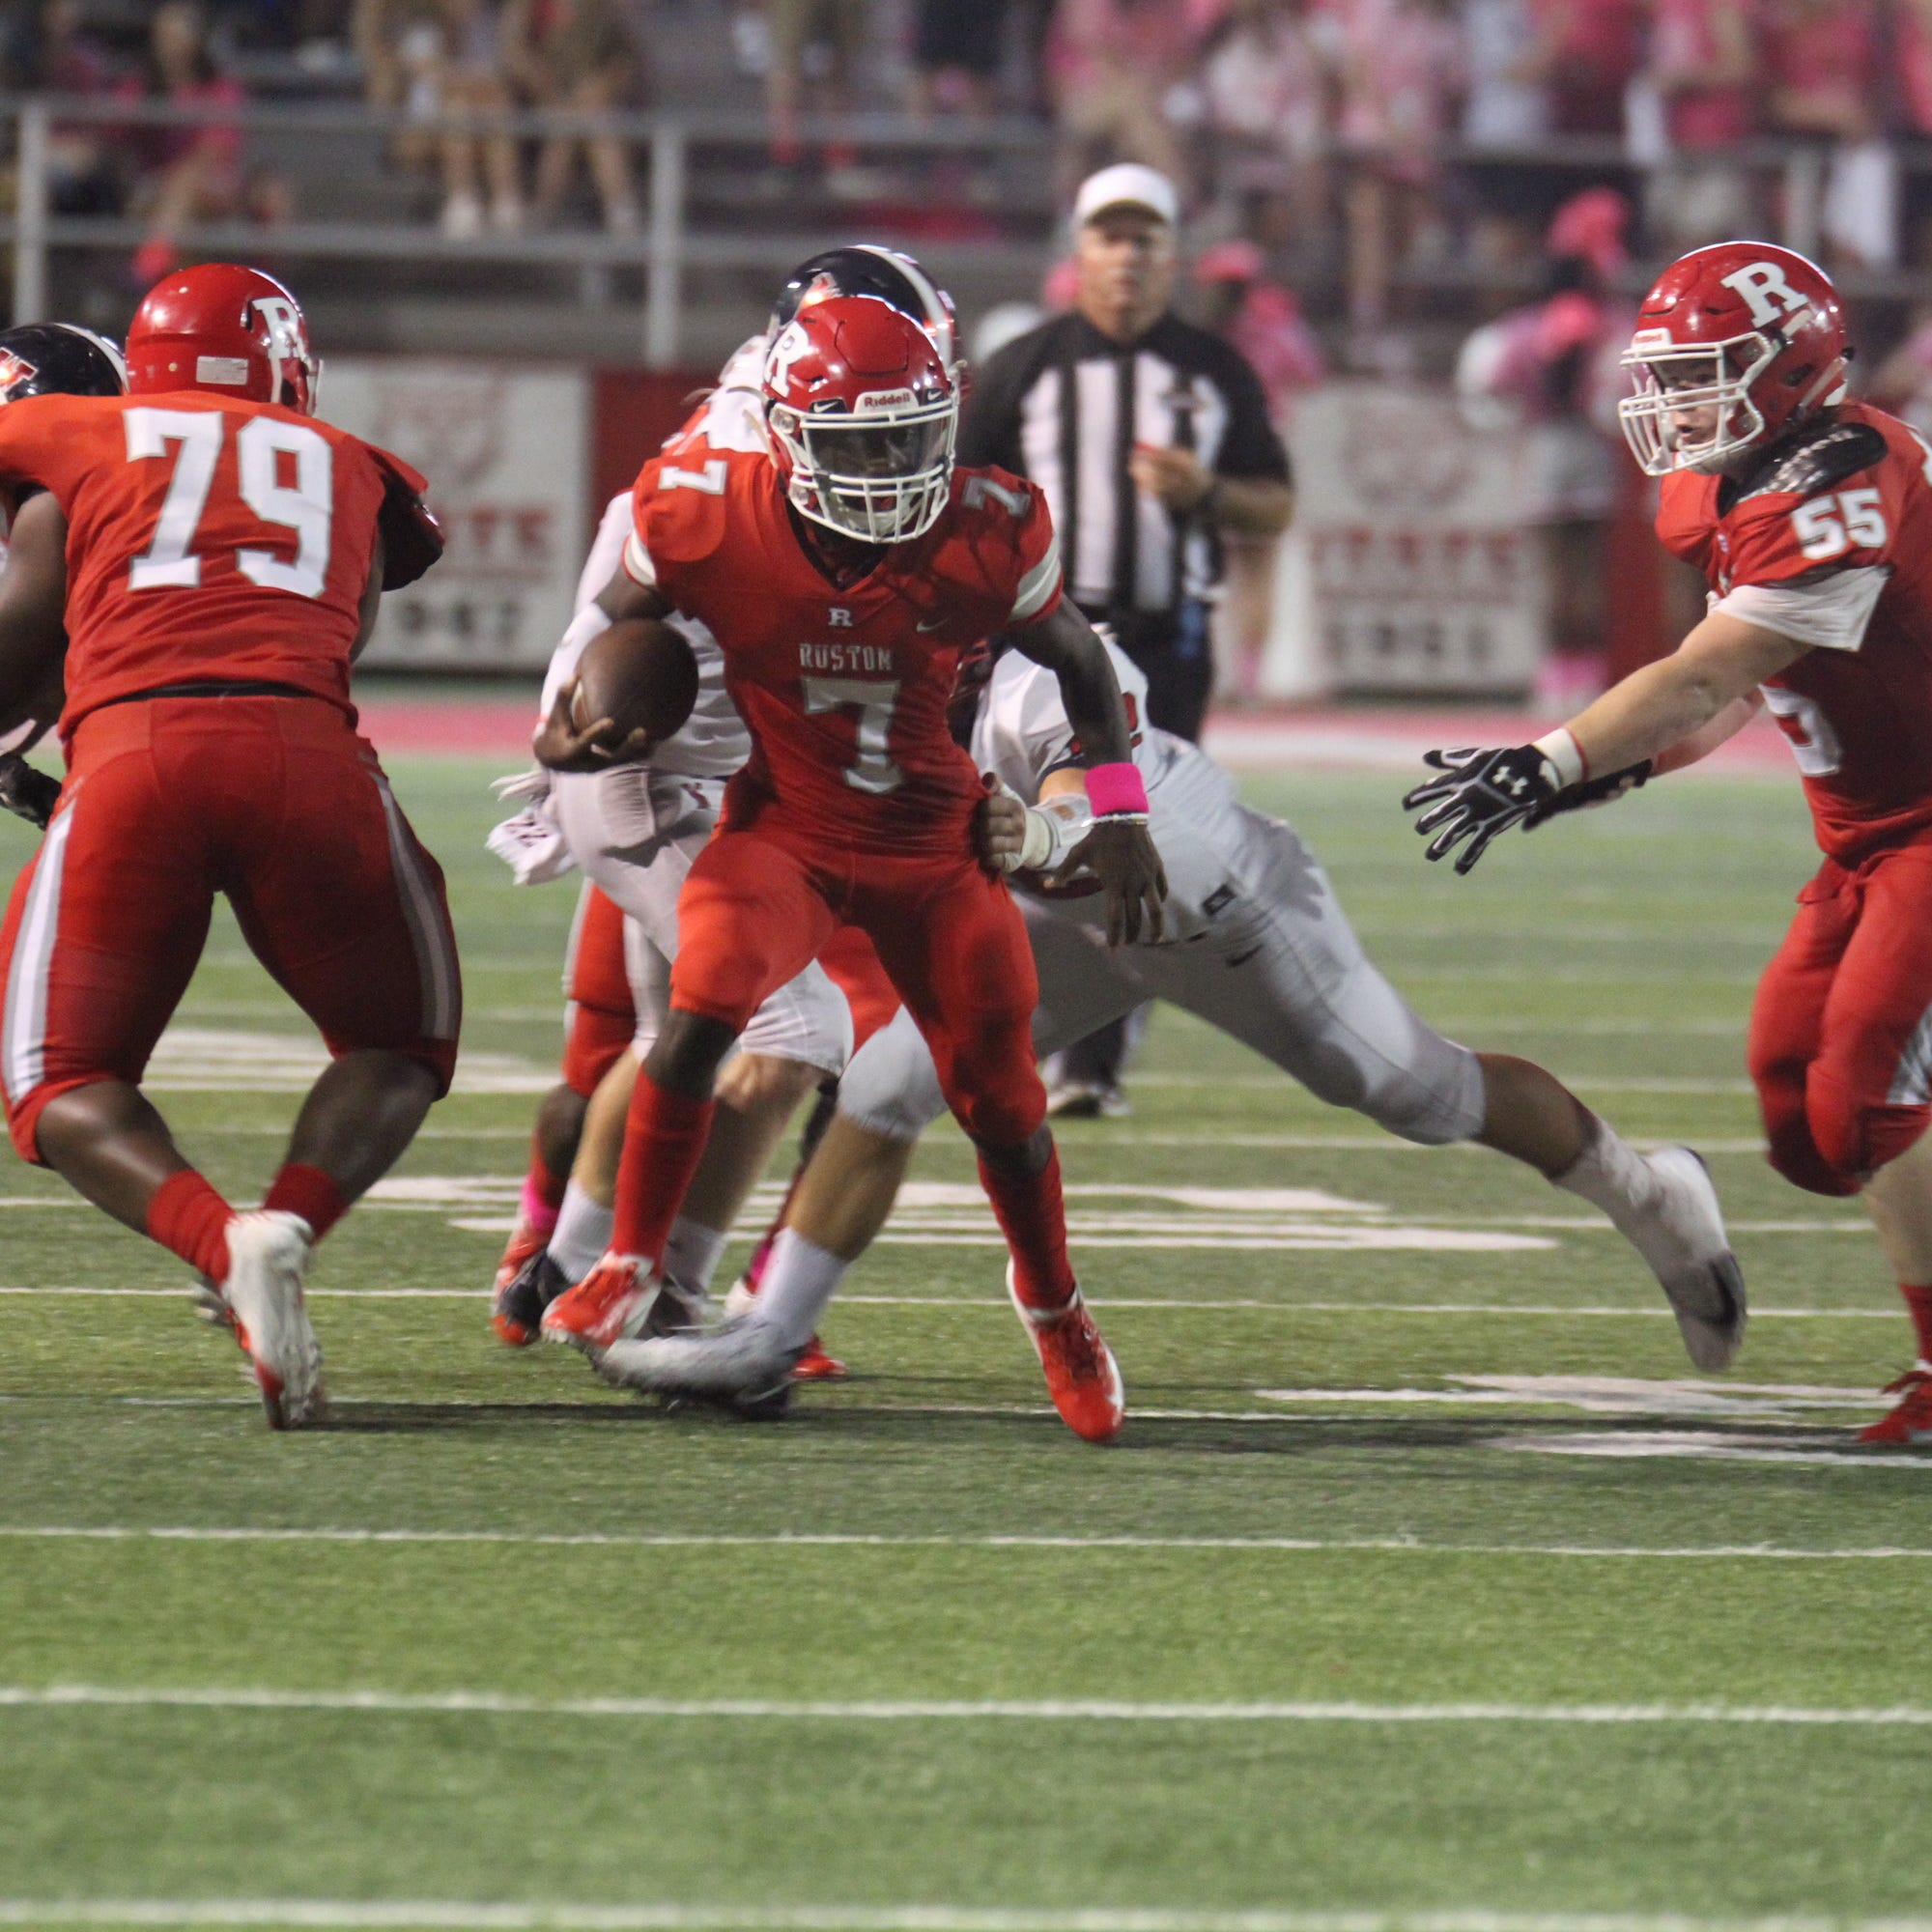 The West Monroe Rebels traveled to take on the Bearcats in Ruston, La. on Oct. 5. The Rebels took a decisive win 45-21